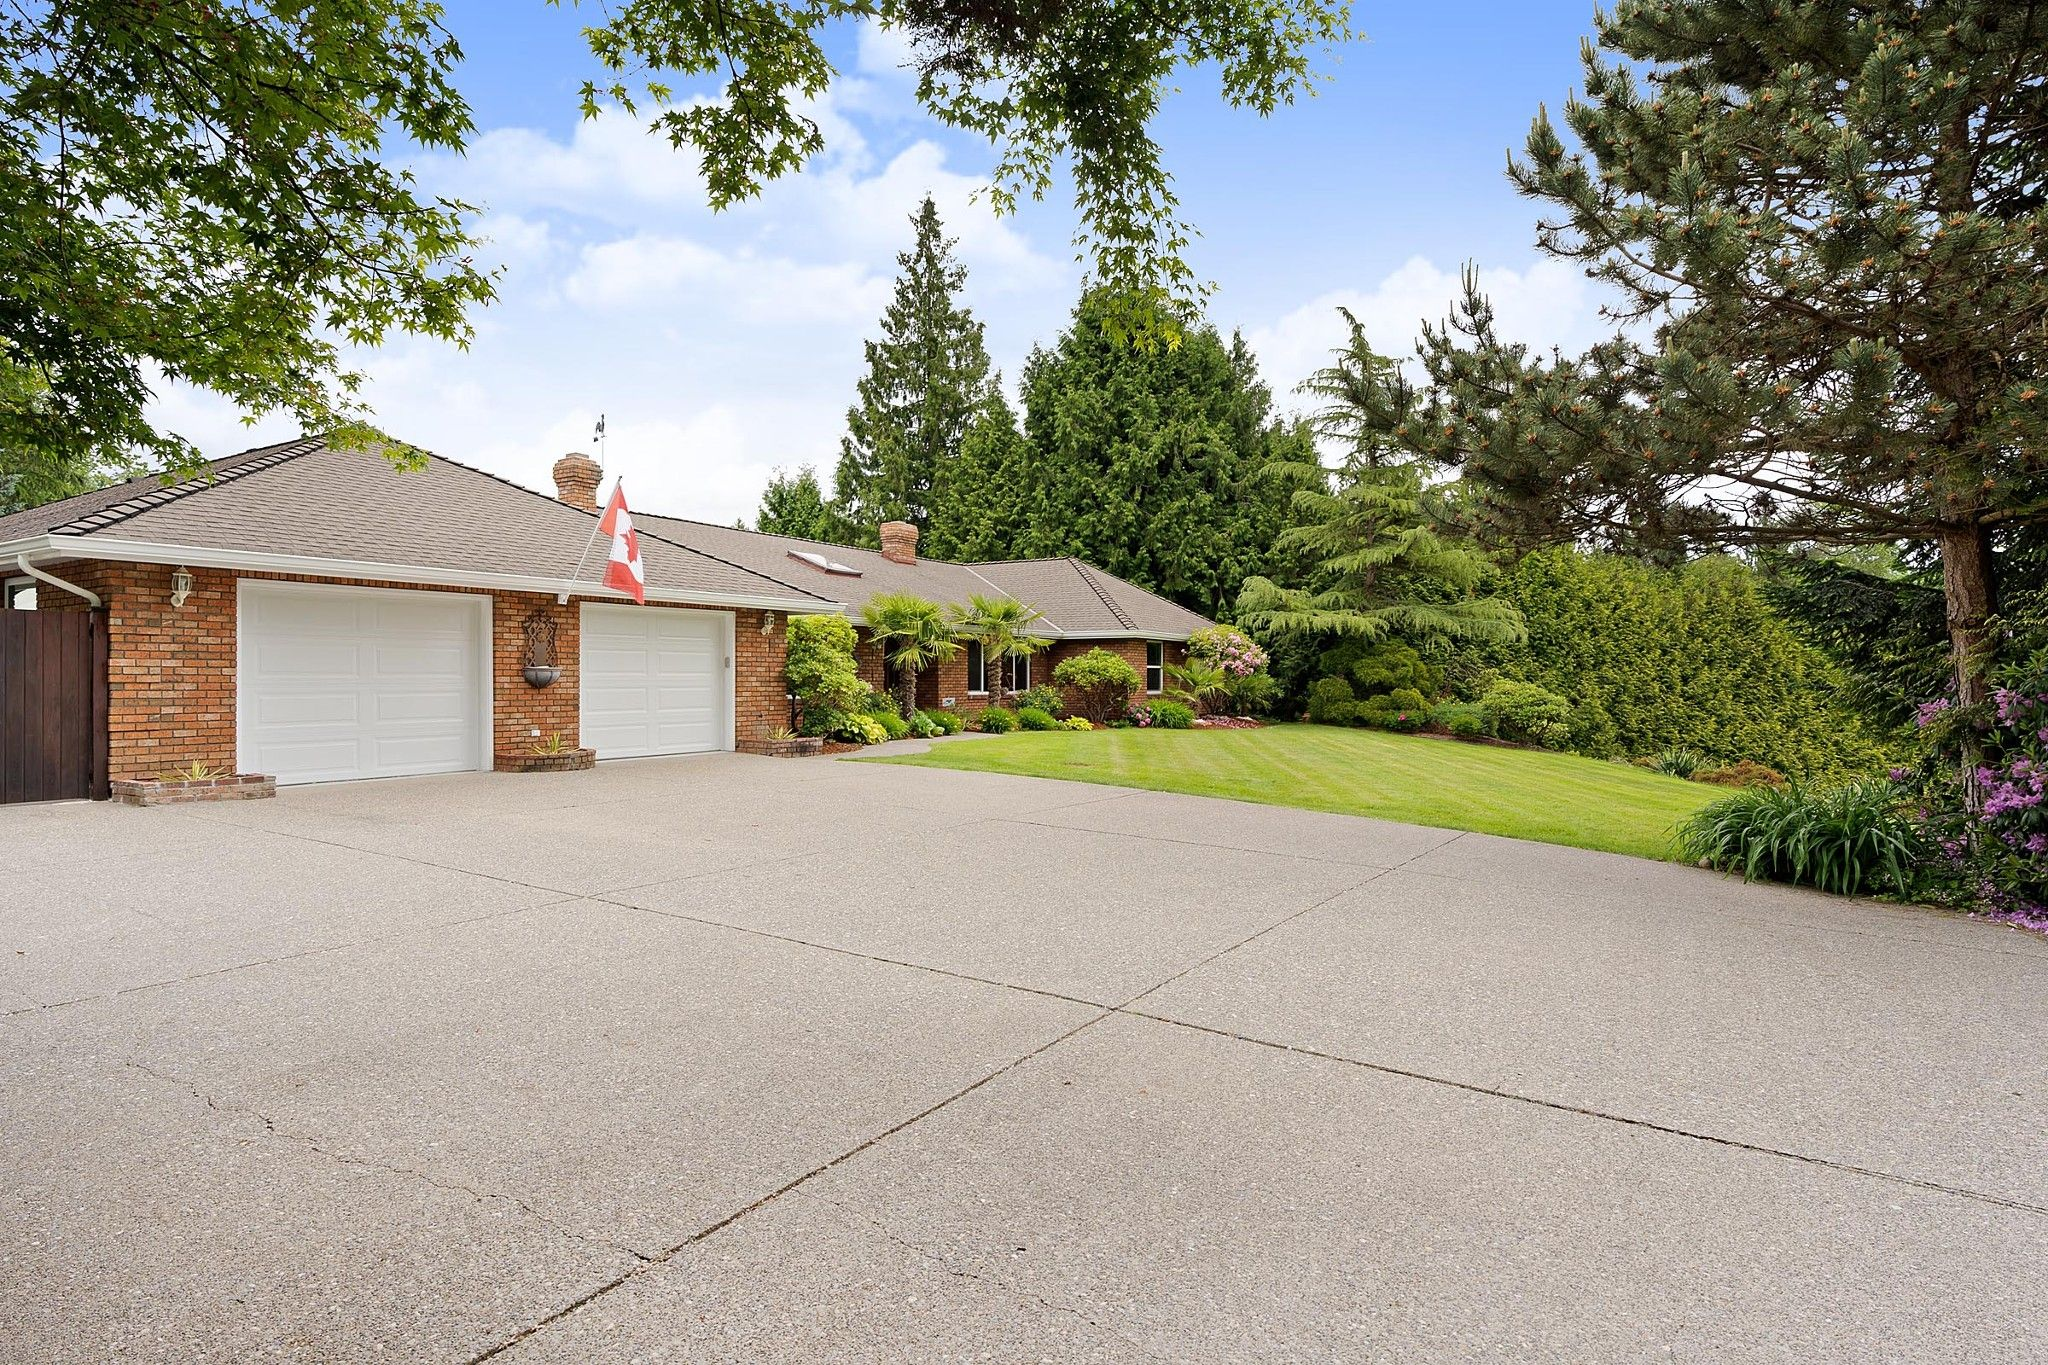 """Main Photo: 21387 40 Avenue in Langley: Brookswood Langley House for sale in """"Brookswood"""" : MLS®# R2458084"""